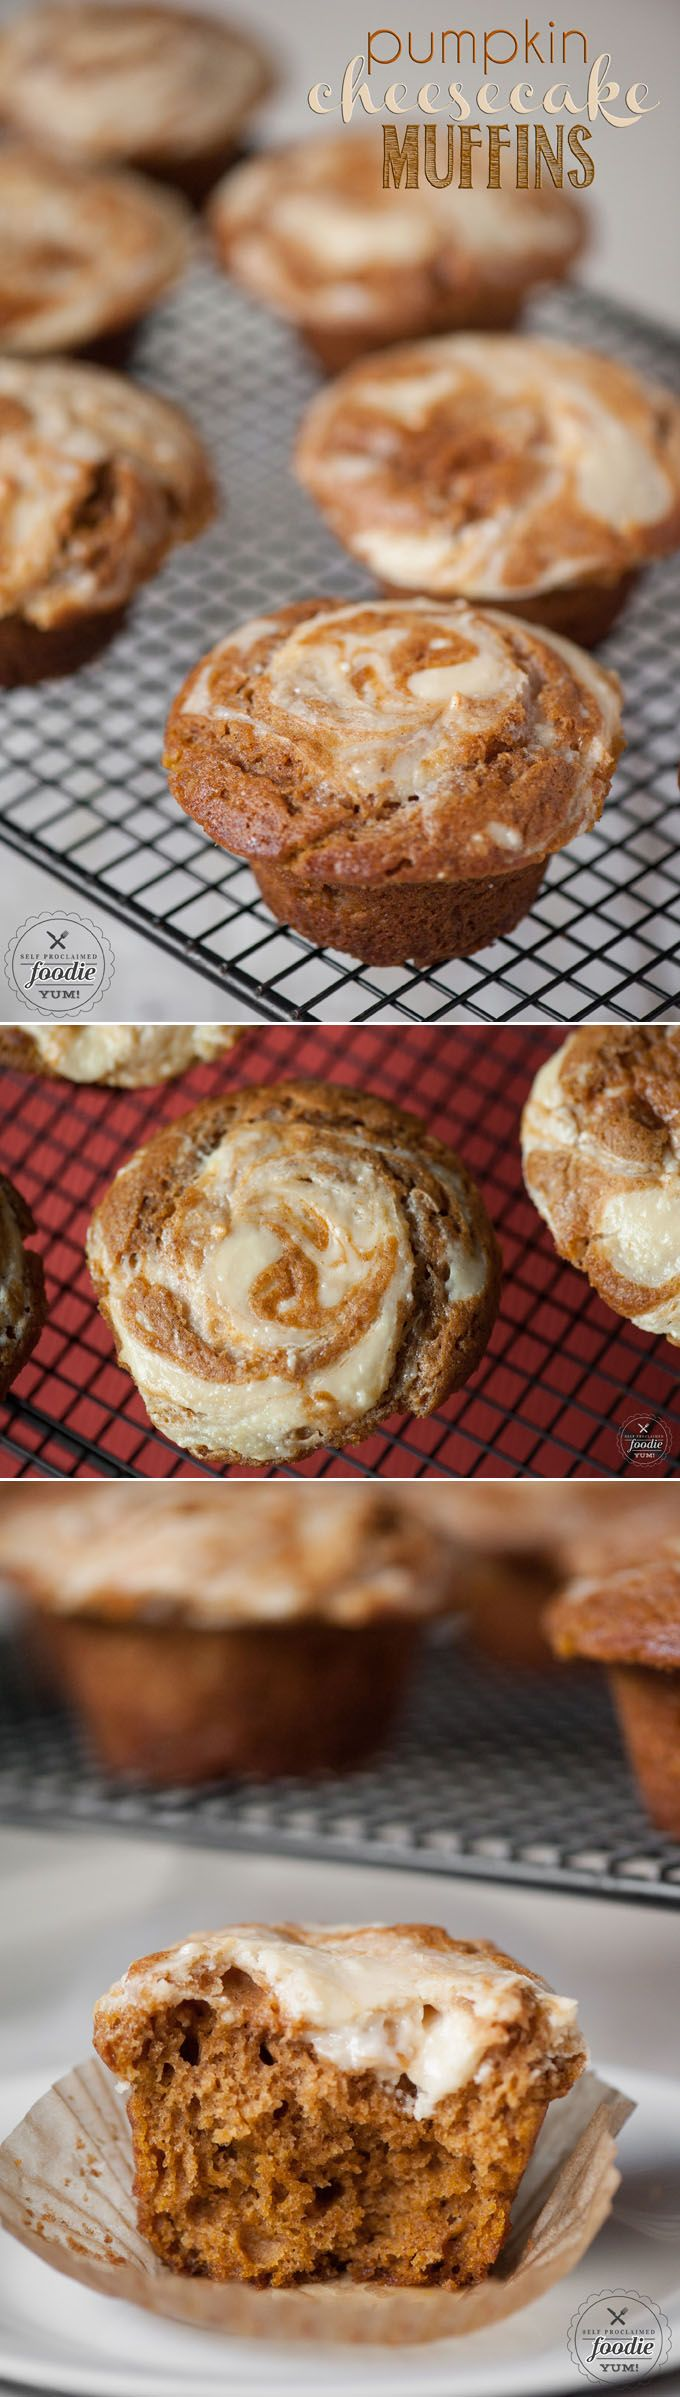 Muffin or cupcake? Its hard to tell with these incredibly moist, super tasty…